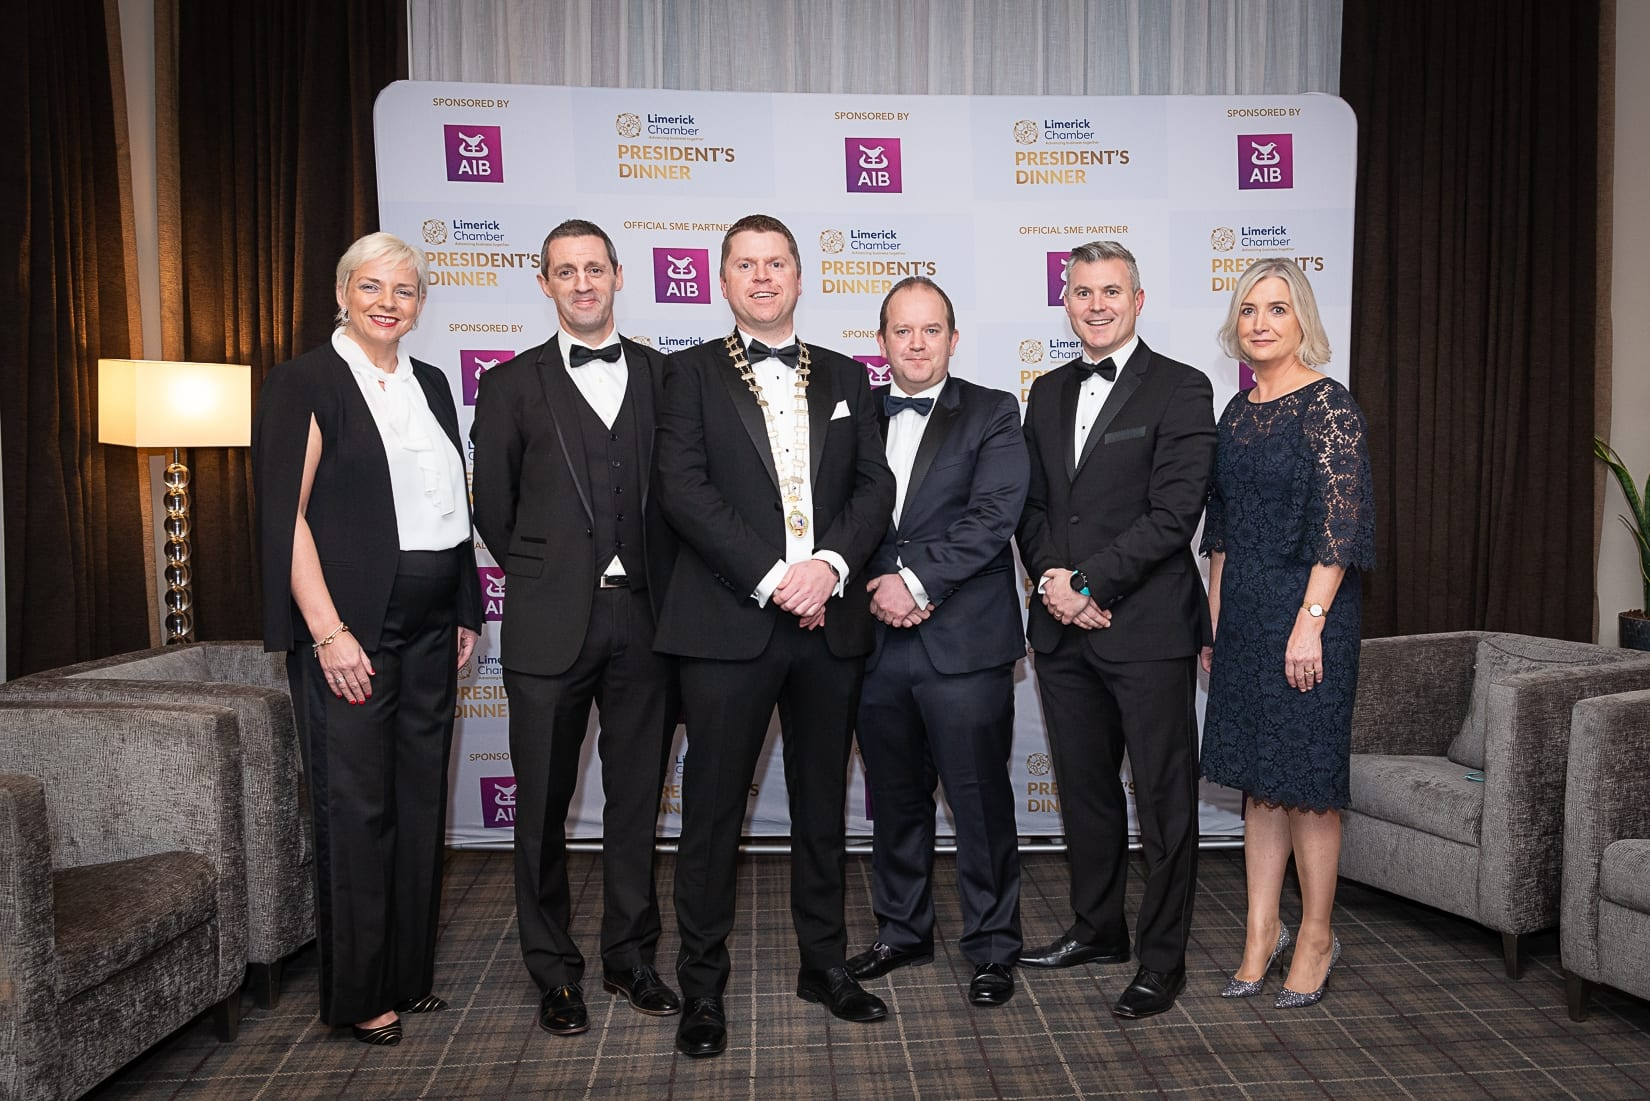 No repro fee-Limerick Chamber President's Dinner and Limerick Chamber Regional Business Awards 2019 which was held in the Strand Hotel on Friday 15th November /  AIB Sponsors/  - From Left to Right: Hilary Gormily, Kieran Considine, Eoin Ryan - President Limerick Chamber, Conor O'Sullivan, Mark Doyle, Judy Tighe all from AIB.  Photo credit Shauna Kennedy